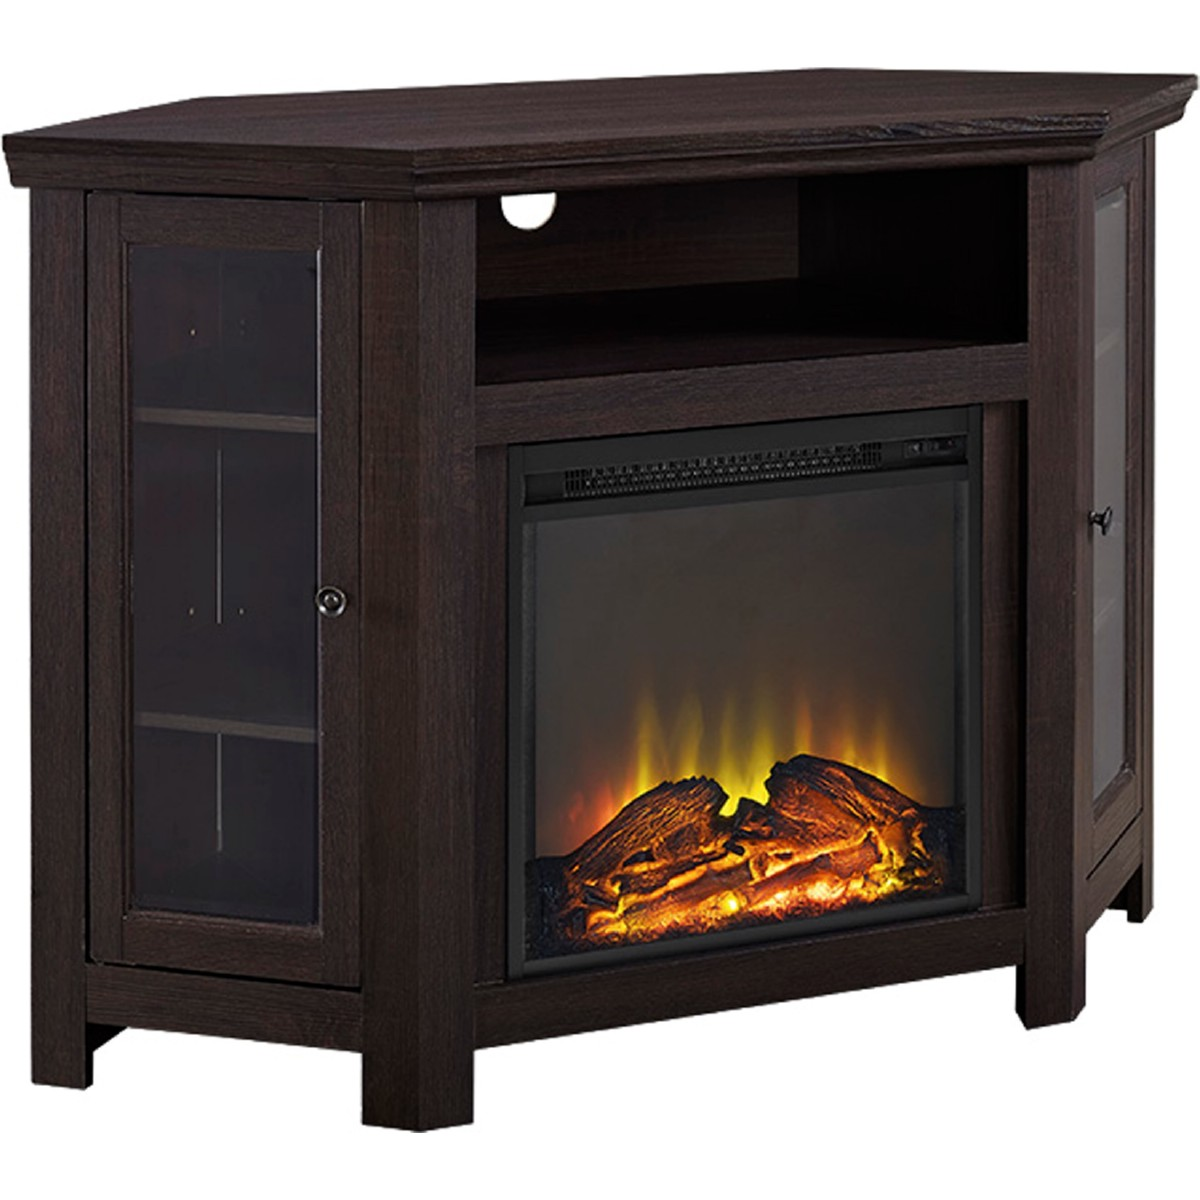 Walker Edison W48fpcres 48 Quot Corner Fireplace Tv Stand In